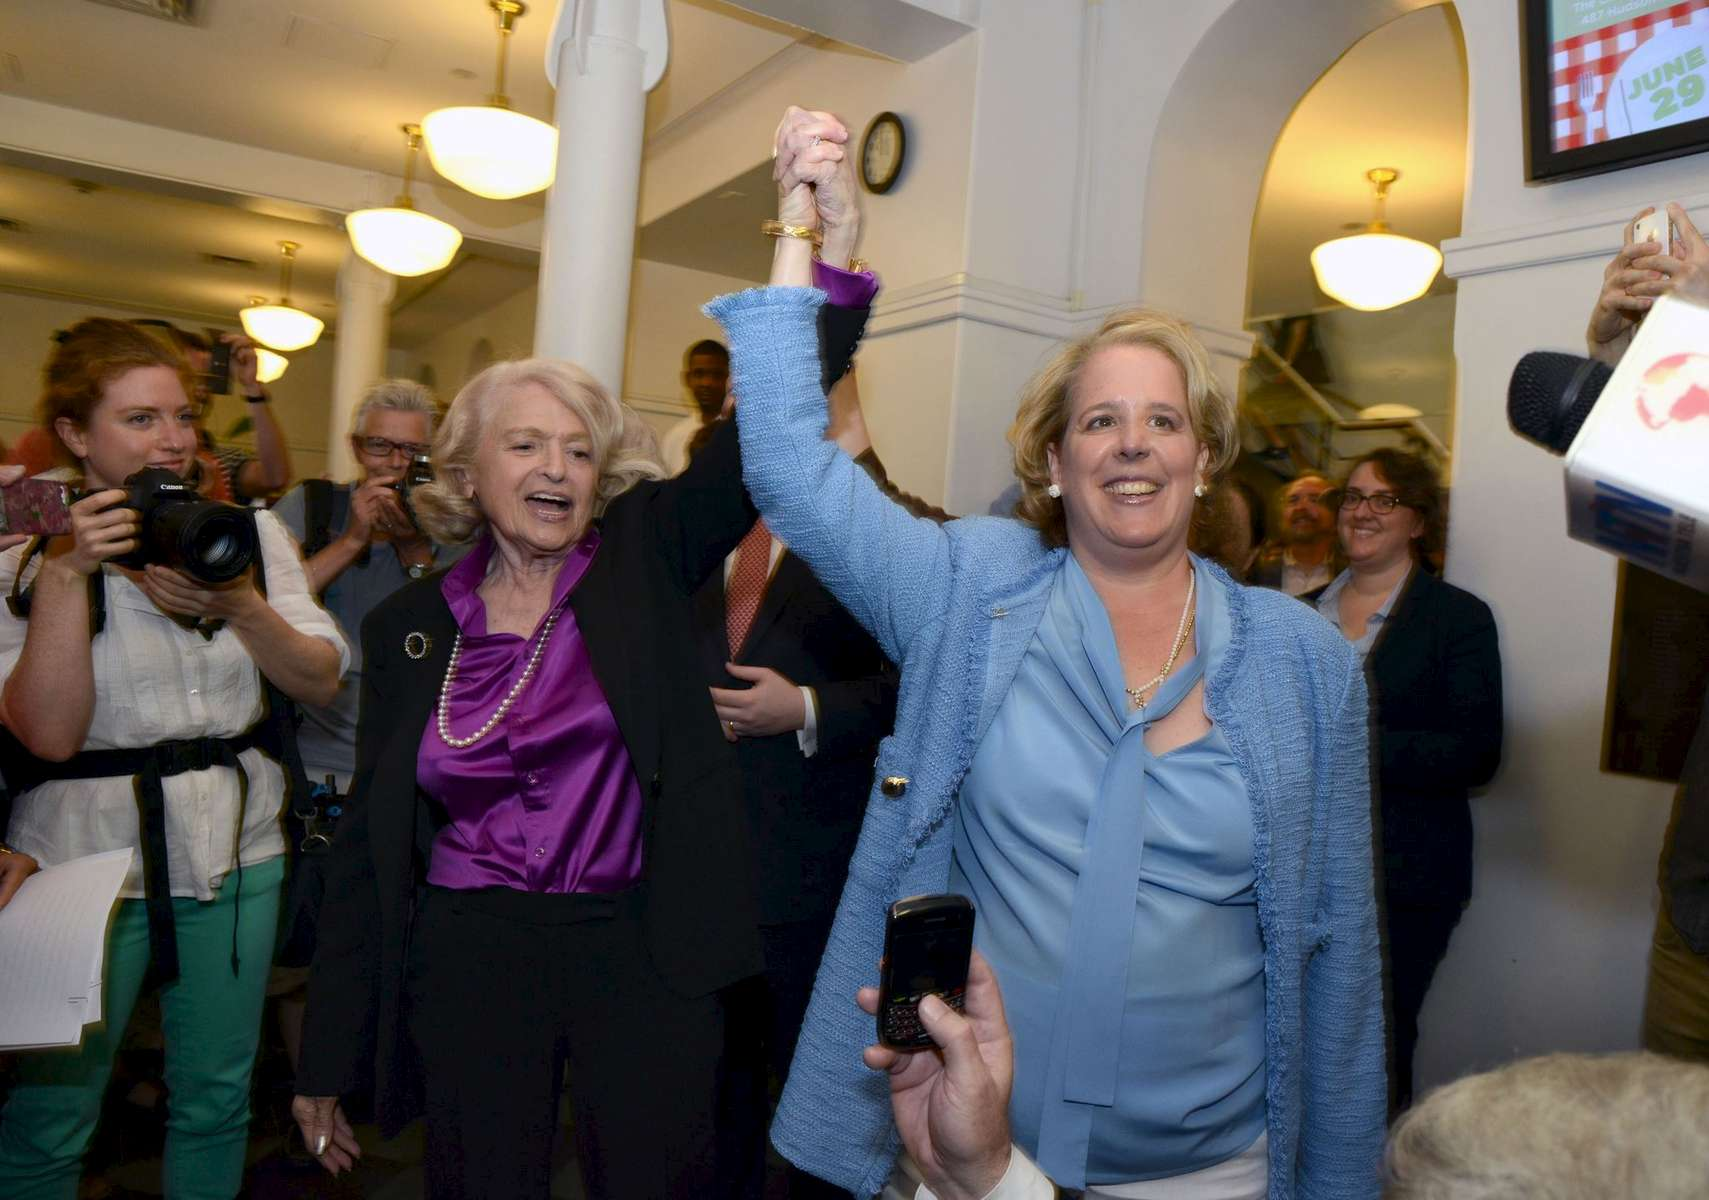 Edie Windor, left, and her attorney Roberta Kaplan celebrate the Supreme Court Decesion in United States v Windsor, Overturning The Defense of Marriage Act.